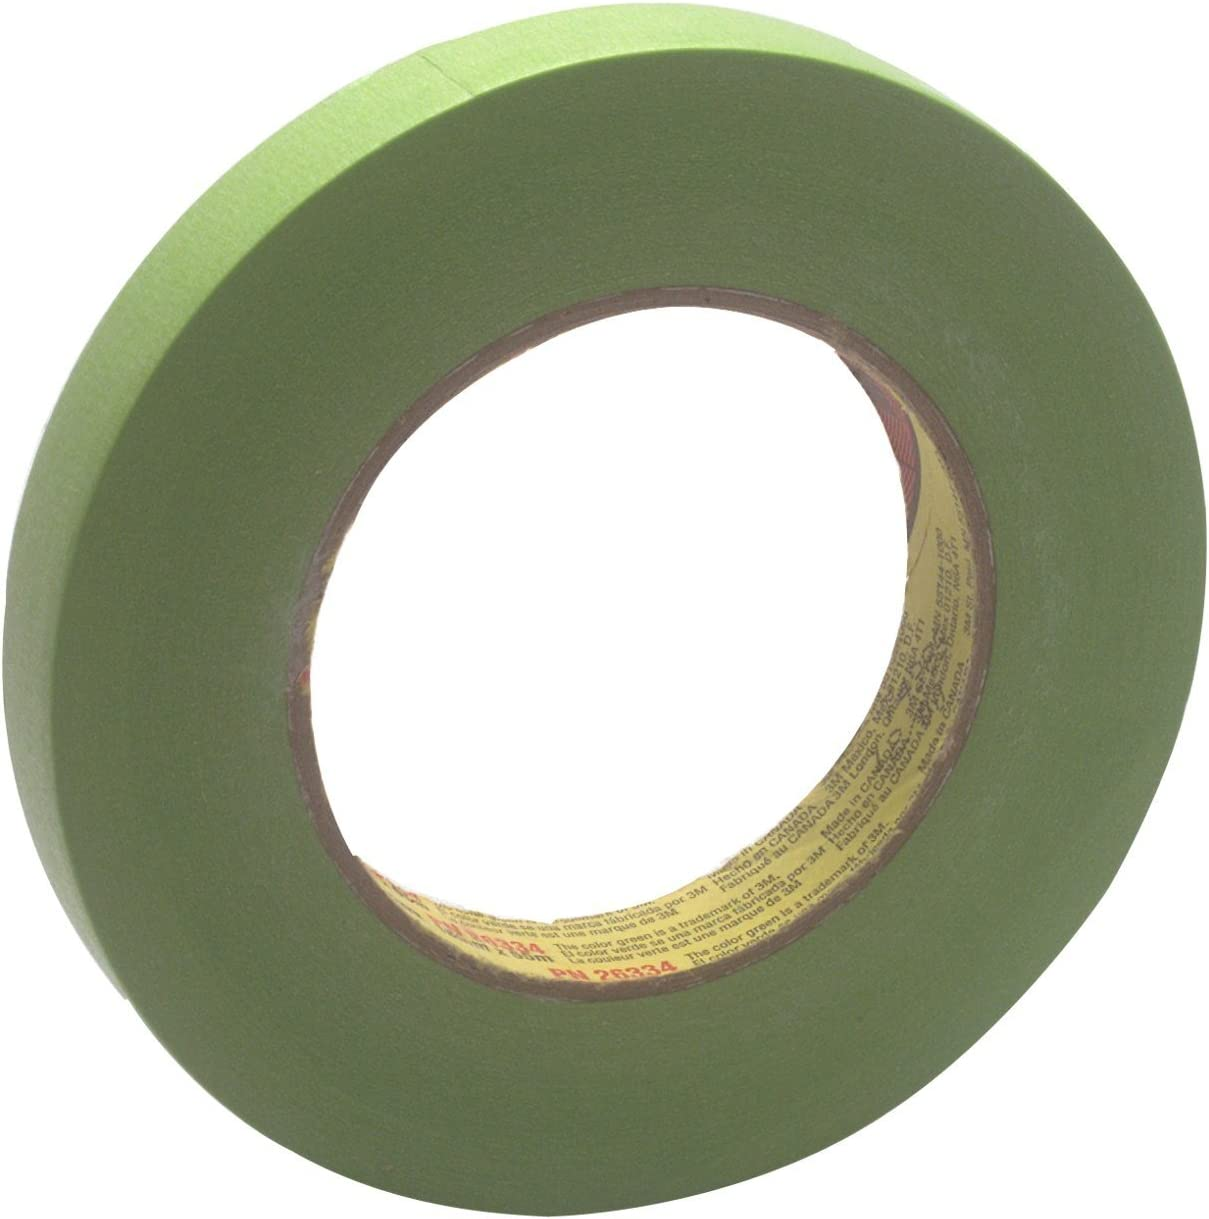 3m automotive masking tape 3/4 inch